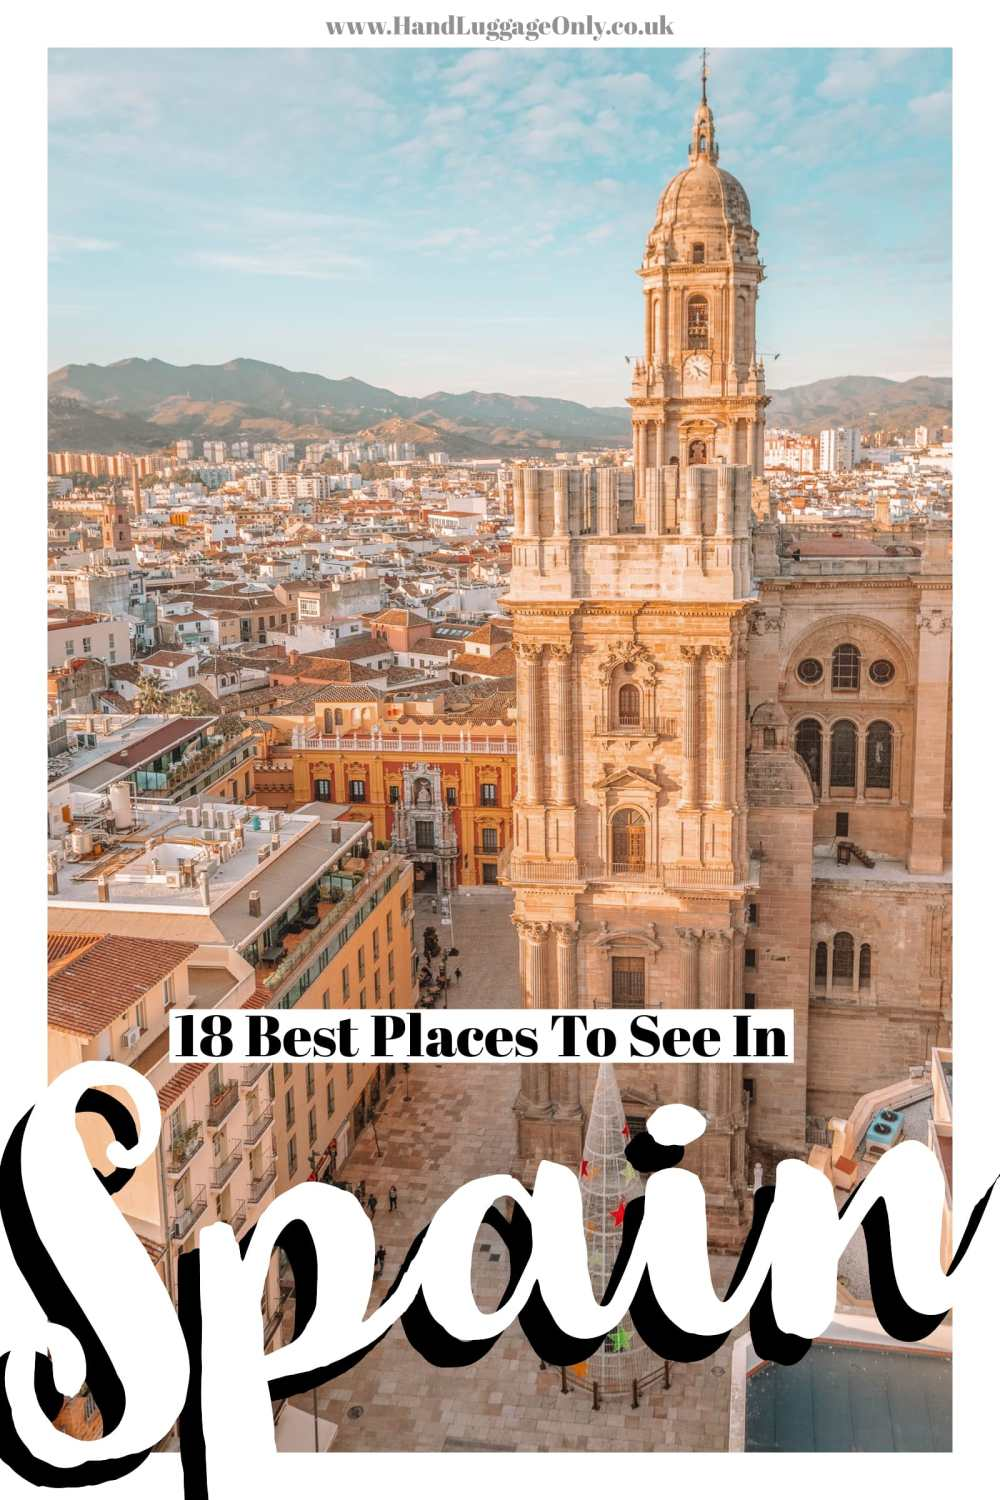 Best Places To See In Spain (1)